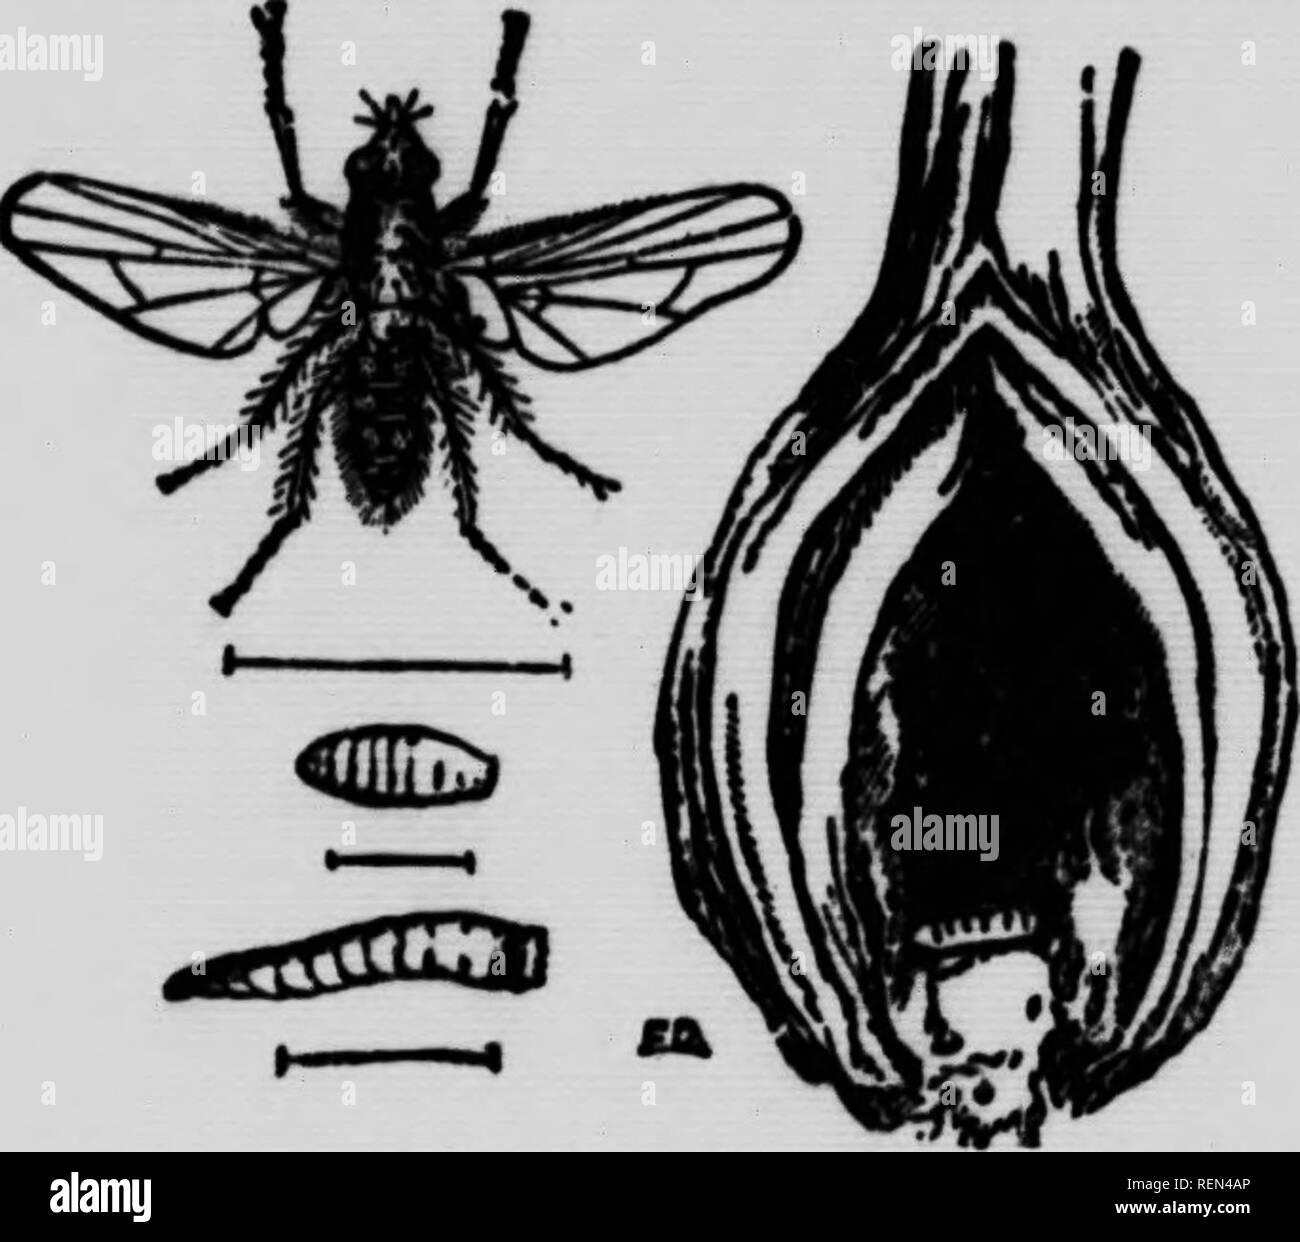 Insects affecting vegetables [microform]  Légumes